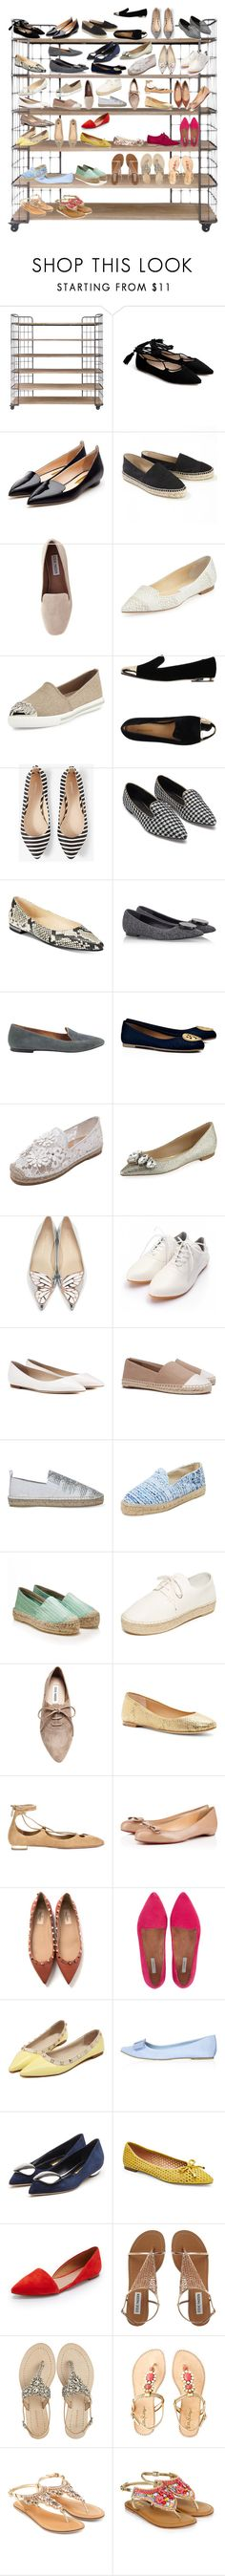 """""""shoes 3"""" by azra-99 on Polyvore featuring Moe's, Rupert Sanderson, Chanel, Steve Madden, Jimmy Choo, Miu Miu, Dsquared2, CO, Circus by Sam Edelman and RAS"""